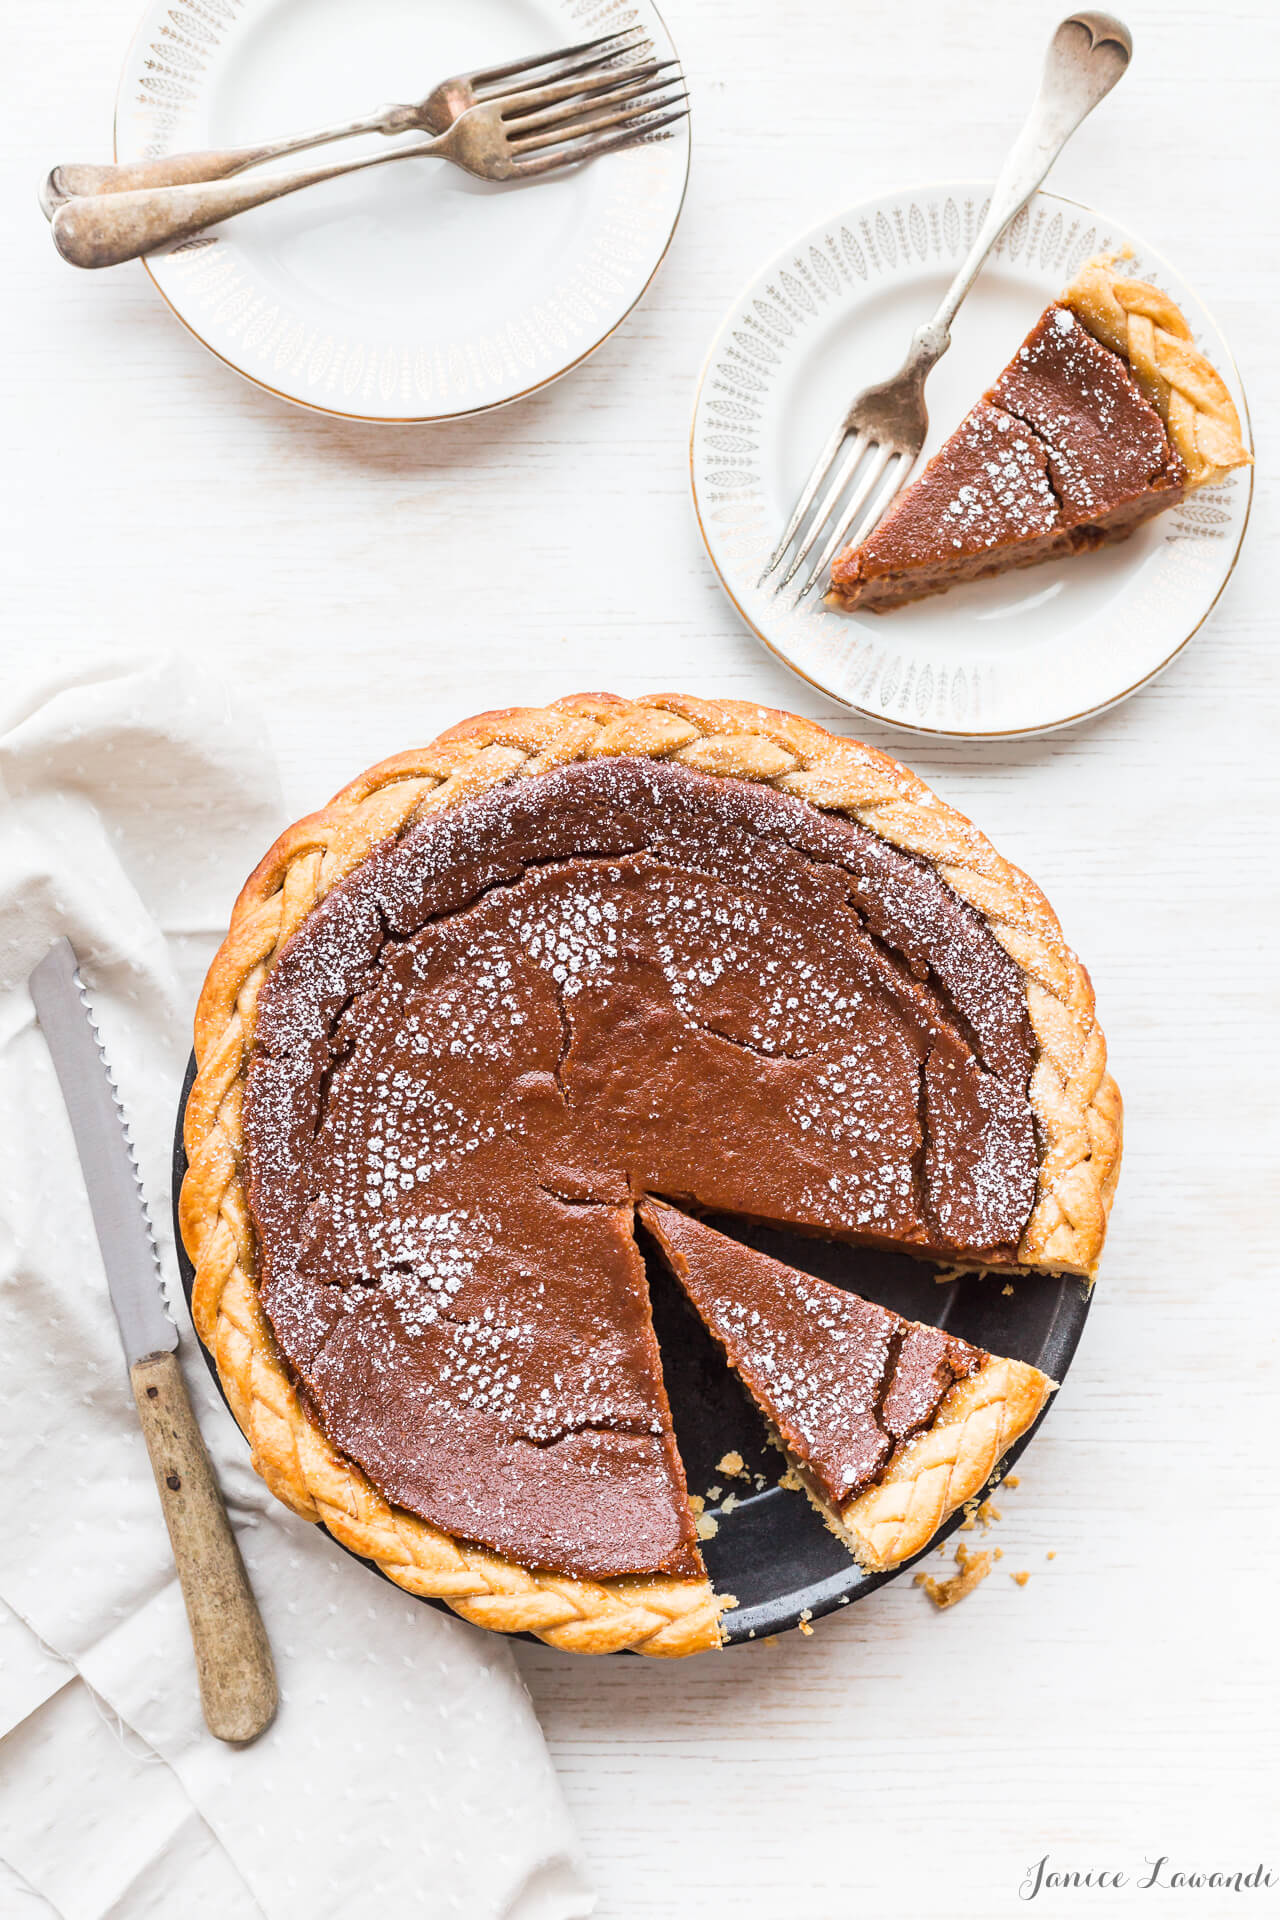 Apple butter pie - Stencil pie with powdered sugar to give it a lacy pattern, sliced and served on white plates